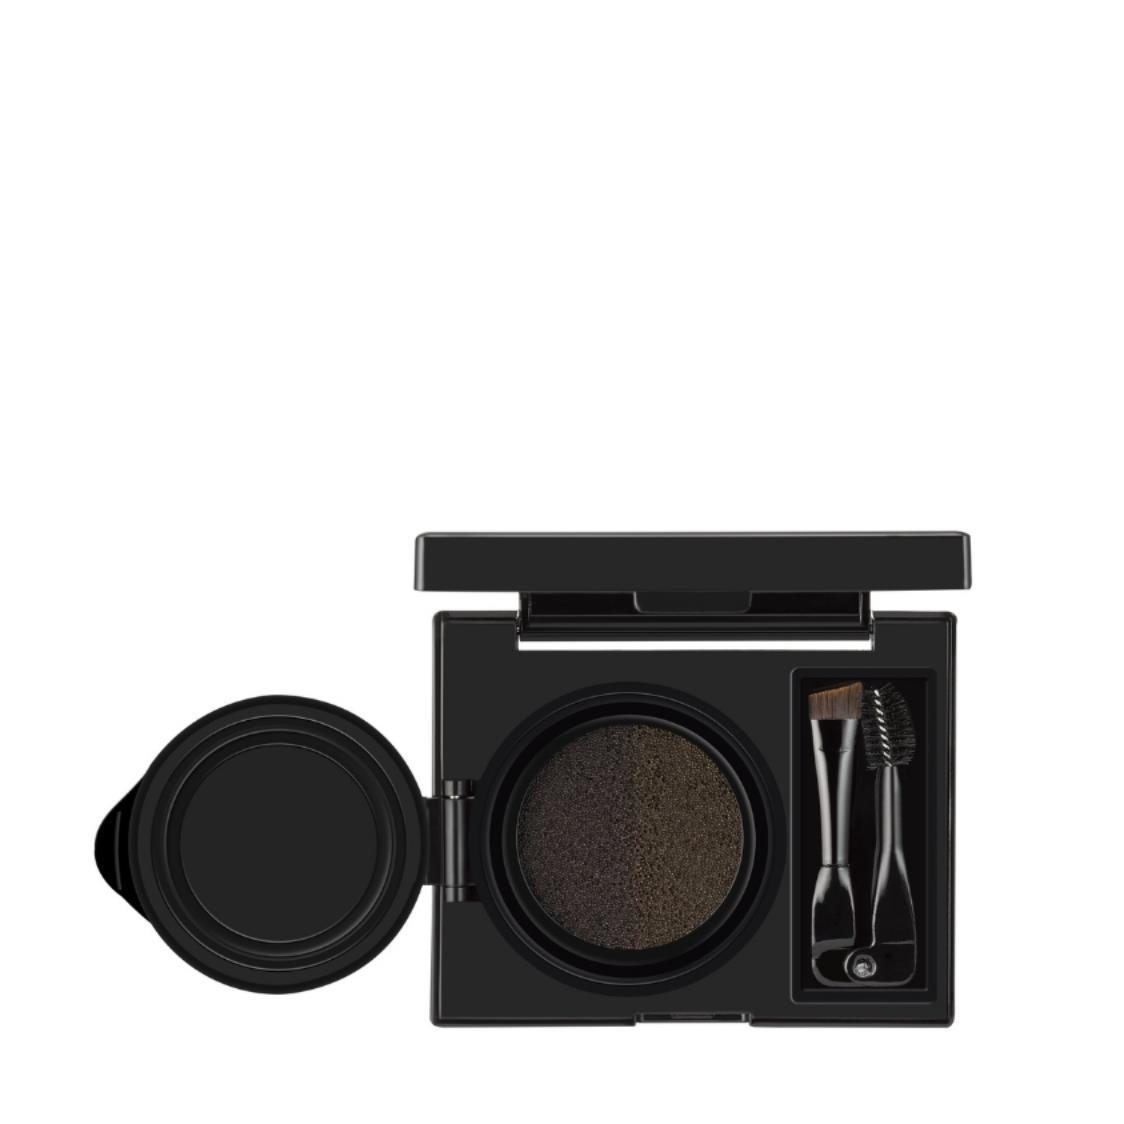 LANEIGE Eyebrow Cushion-cara No4 Blonde